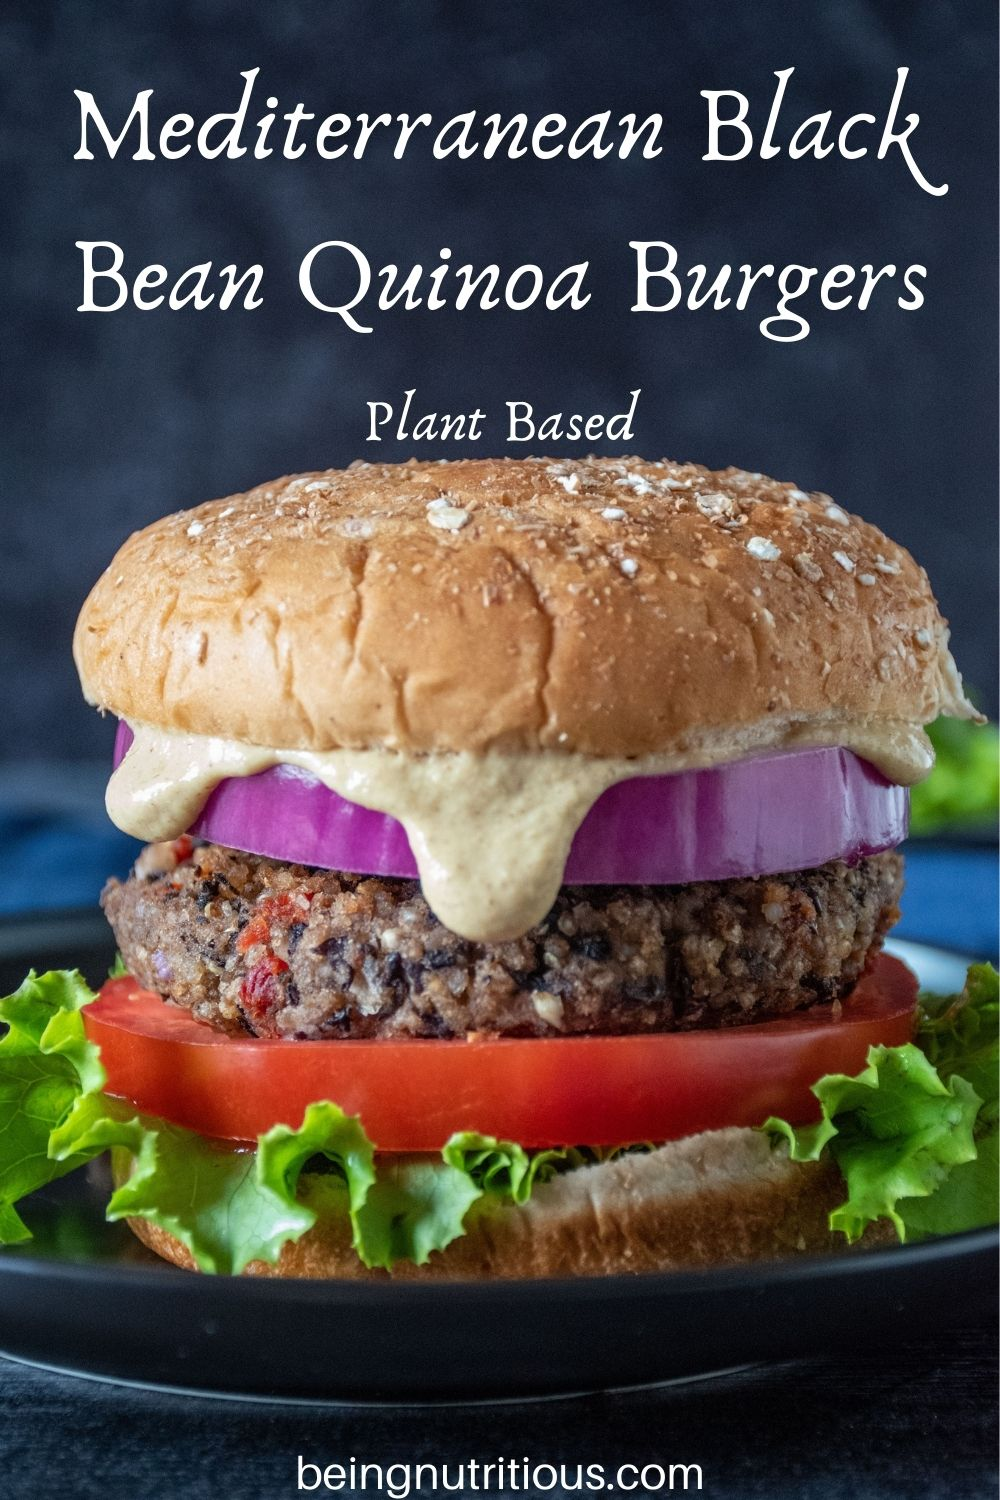 Bean burger on a bun, with onions, tomatoes, lettuce and sauce dripping out. Text overlay: Mediterranean Black Bean Quinoa Burgers; Plant Based.